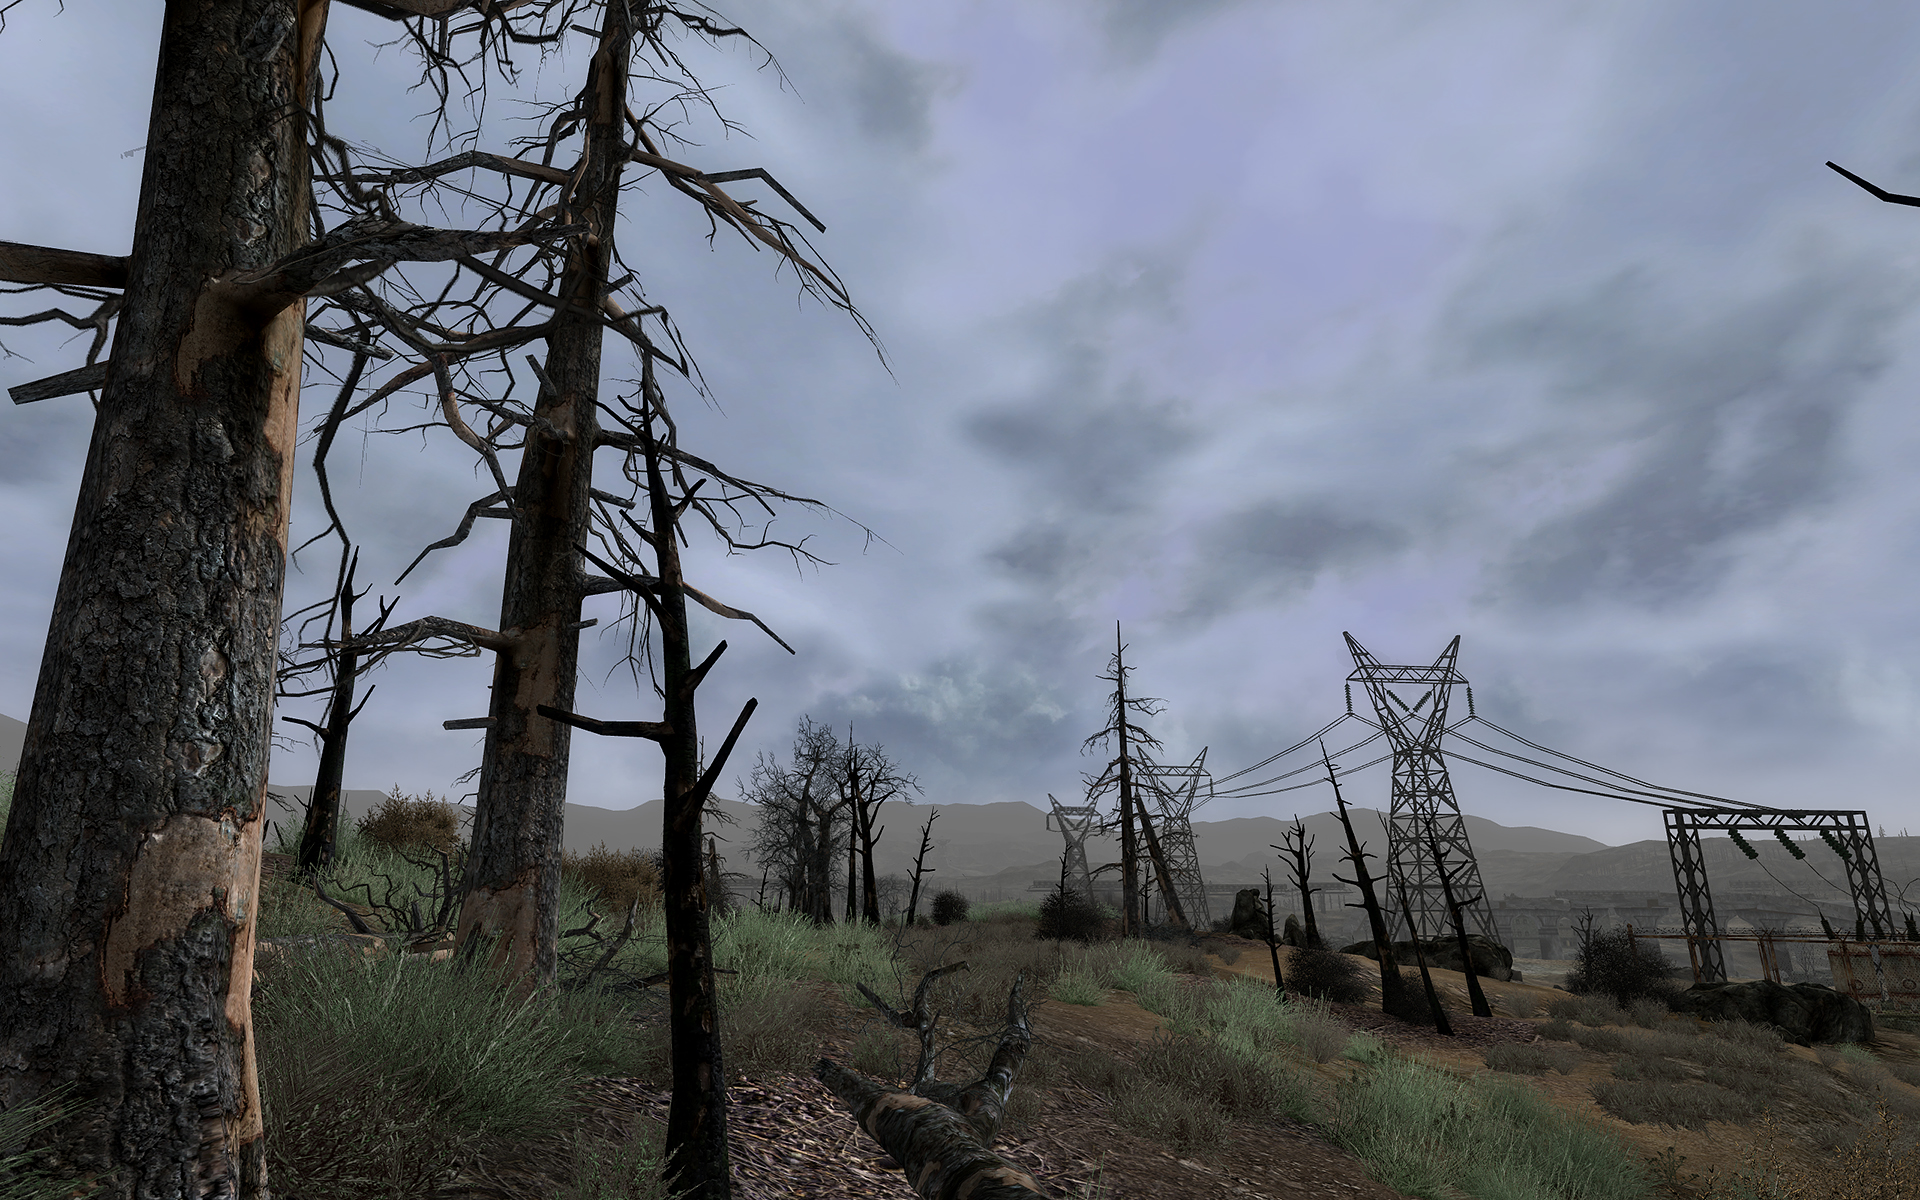 Fallout 3 and New Vegas mod discussion   NeoGAF